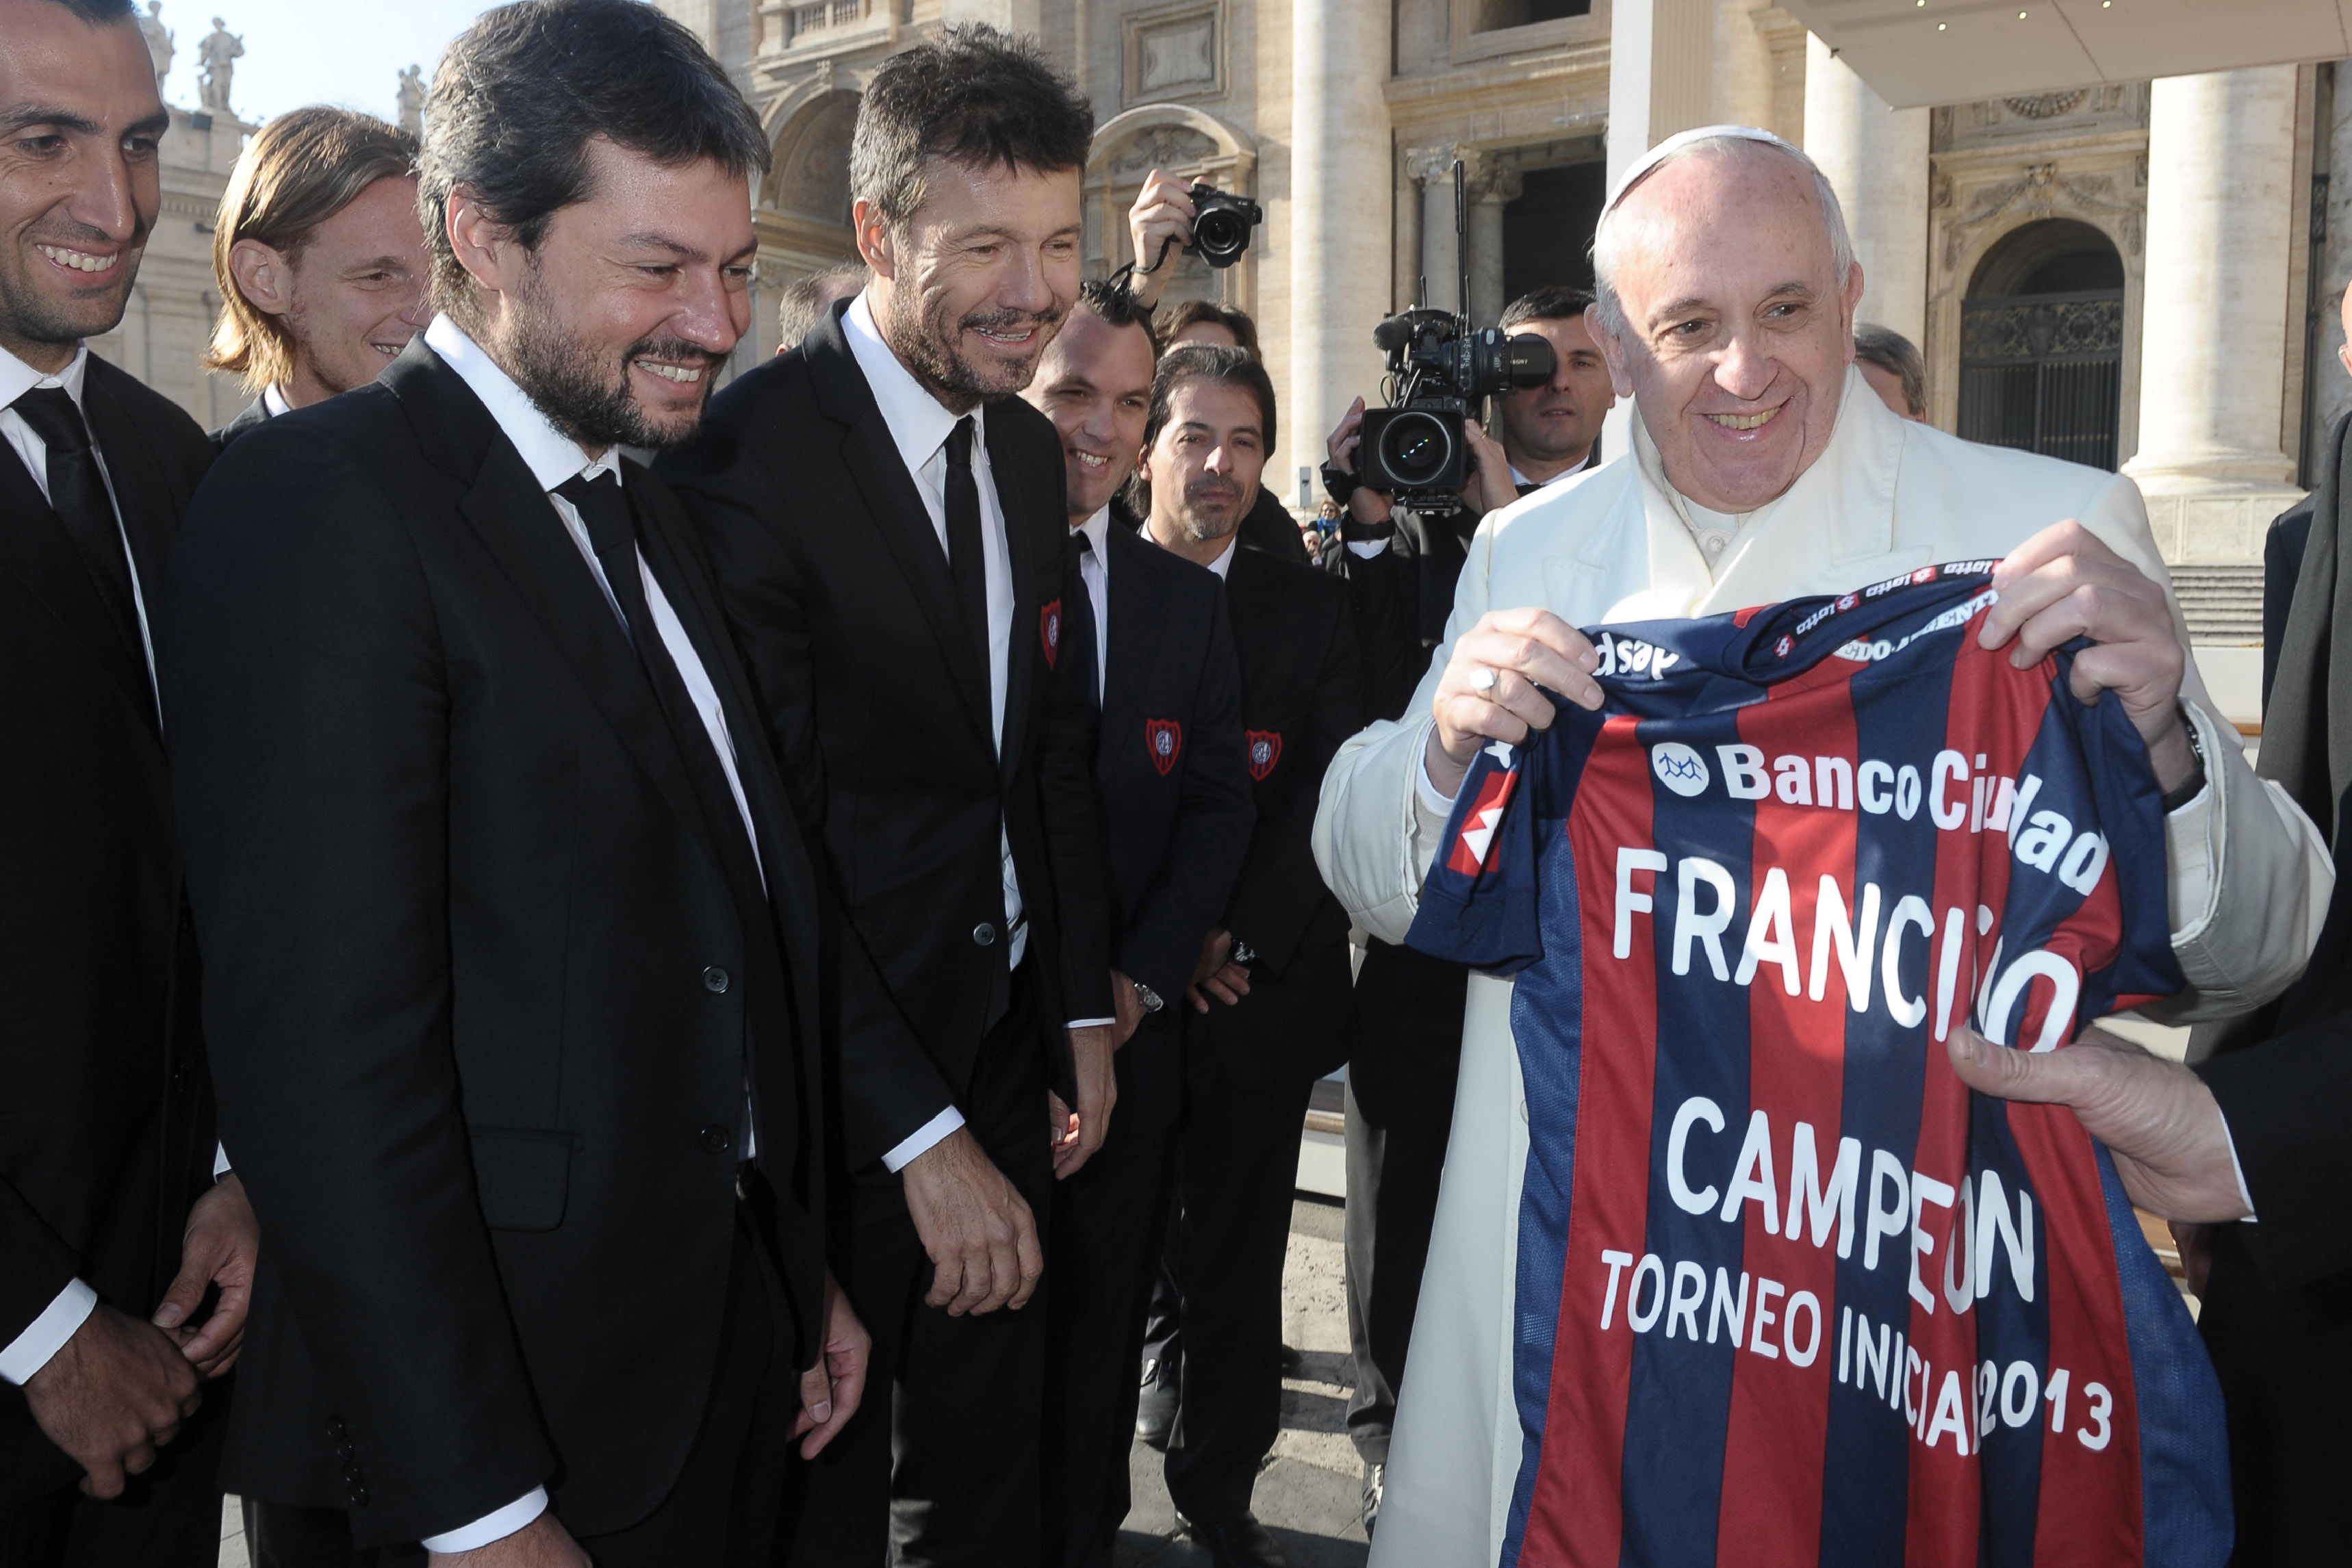 """In this picture provided by the Vatican newspaper L'Osservatore Romano, Pope Francis shows a jersey of San Lorenzo soccer team he was presented by team's President Matias Lammens, center, and deputy-president Marcelo Tinelli, second left, at the Vatican, Wednesday, Dec. 18, 2013. Pope Francis has celebrated his beloved San Lorenzo's victory in the Argentine soccer championship, hoisting up a replica of their trophy for all to see. A small group of team managers and players met with Francis on the steps of St. Peter's Basilica at the end of his Wednesday general audience. The group presented him with the replica of the trophy and a red and blue team jersey with """"Francisco Campeon"""" written on back. A clearly pleased Francis raised the trophy for all to see. San Lorenzo, of which then-Cardinal Jorge Mario Bergoglio was a registered fan, clinched the Argentine championship Sunday. (AP Photo/L'Osservatore Romano)"""